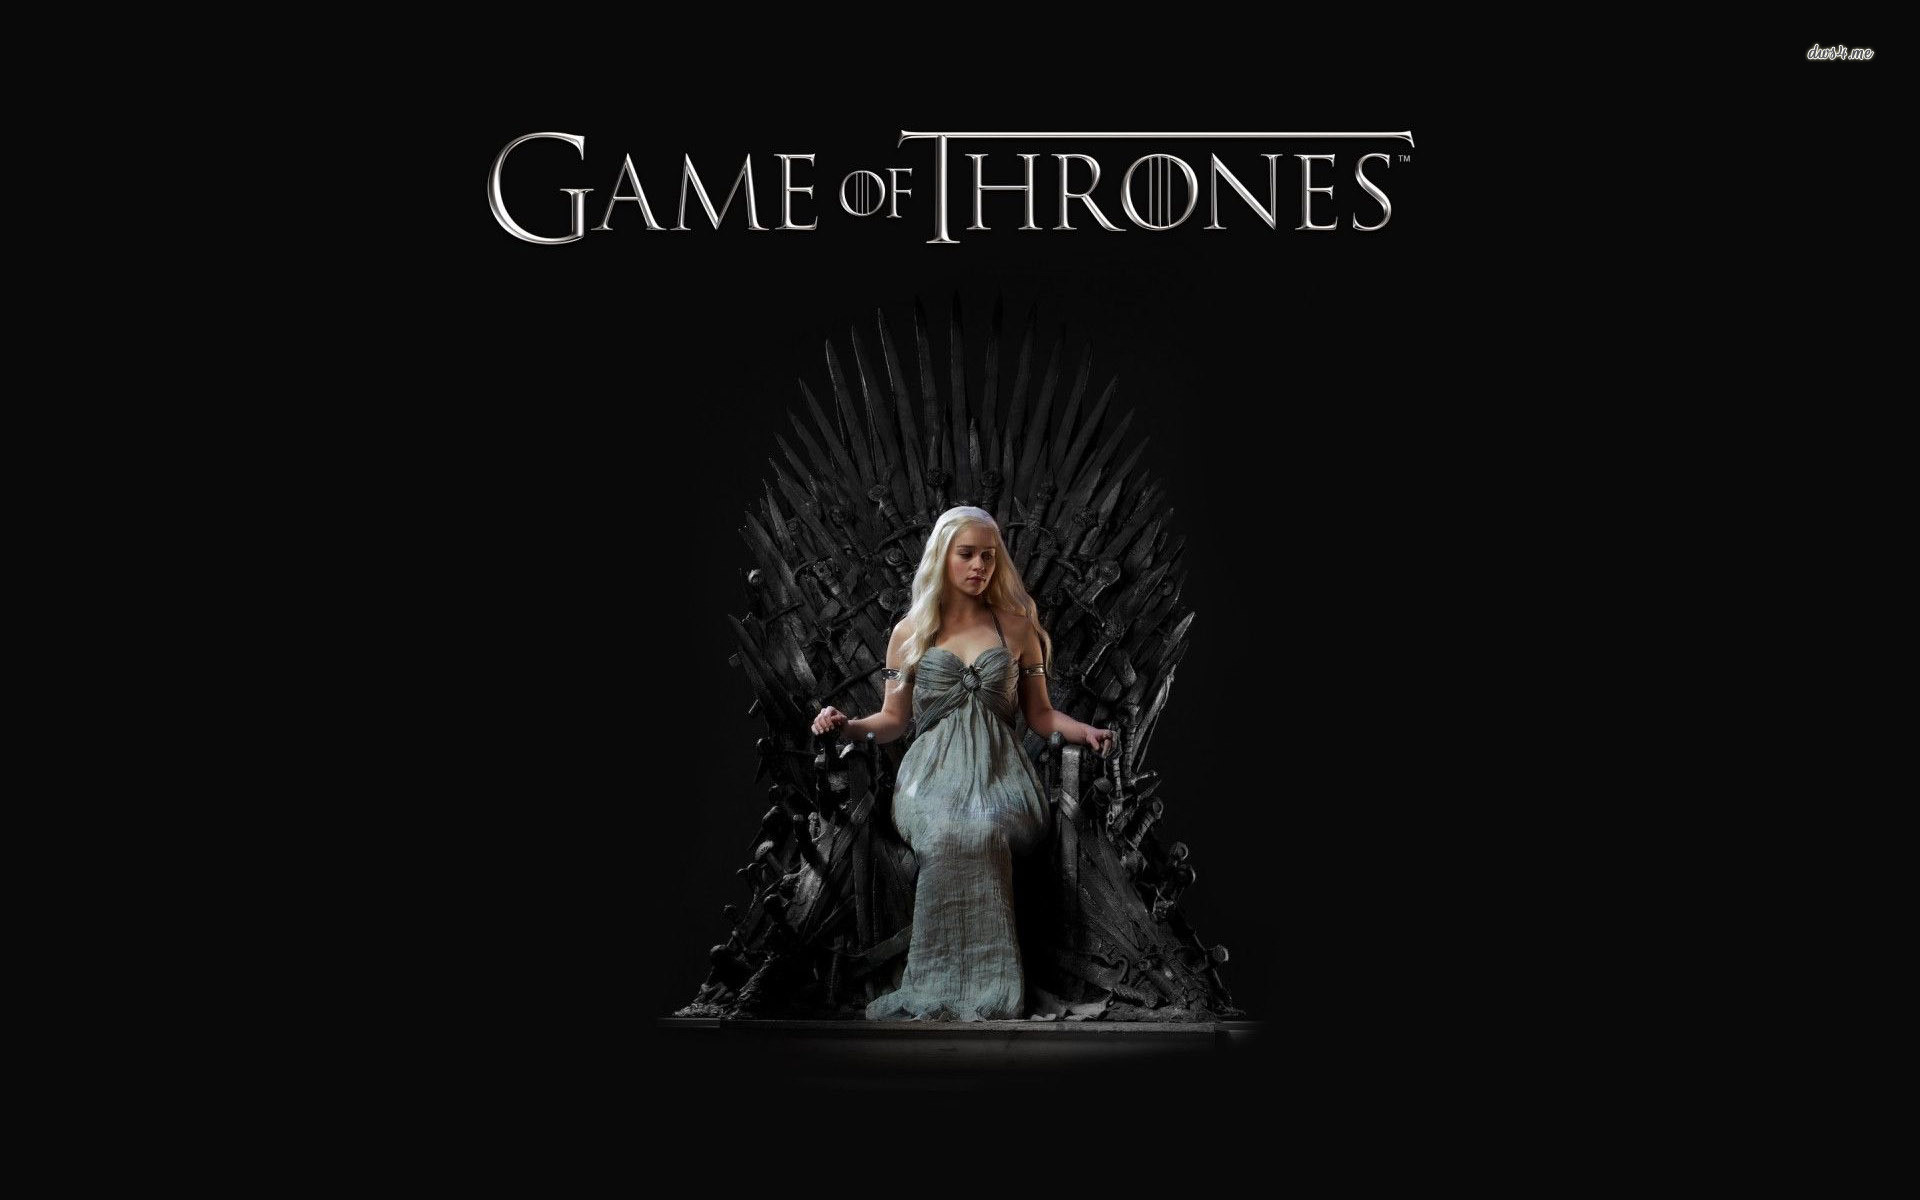 High Quality HD Game of Thrones wallpapers 95478 is free HD wallpaper .